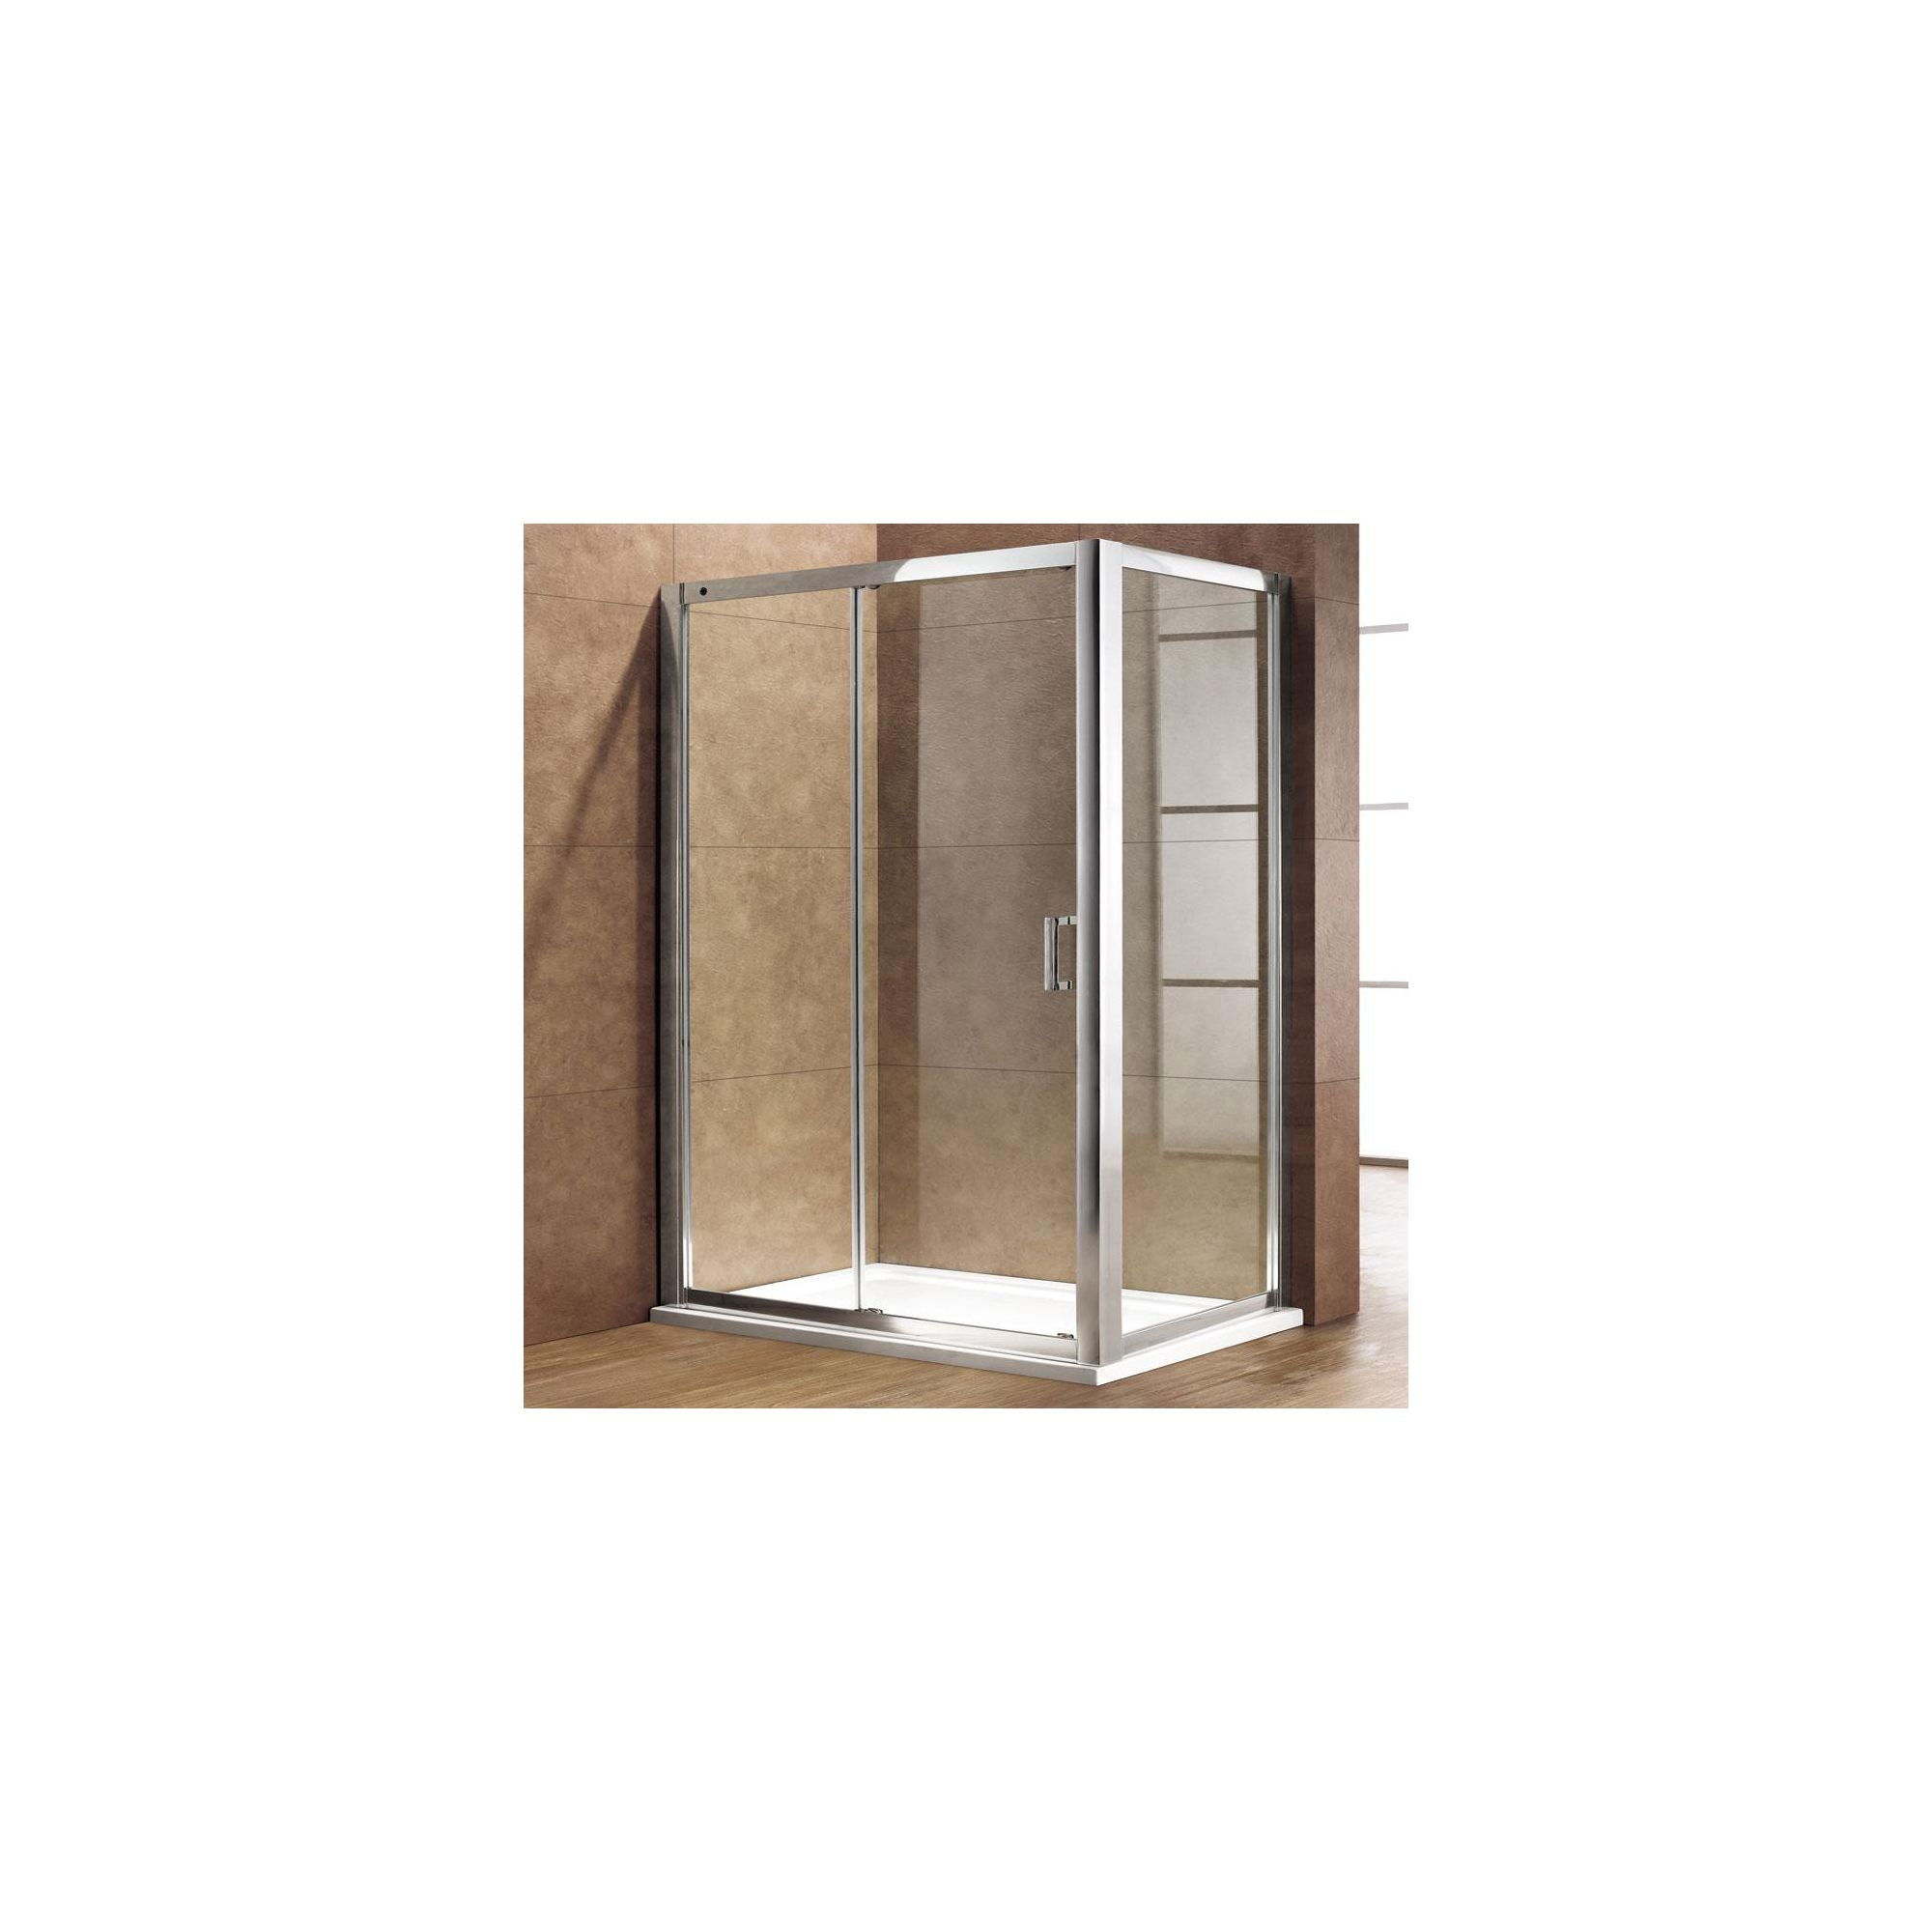 Duchy Premium Single Sliding Door Shower Enclosure, 1000mm x 900mm, 8mm Glass, Low Profile Tray at Tescos Direct